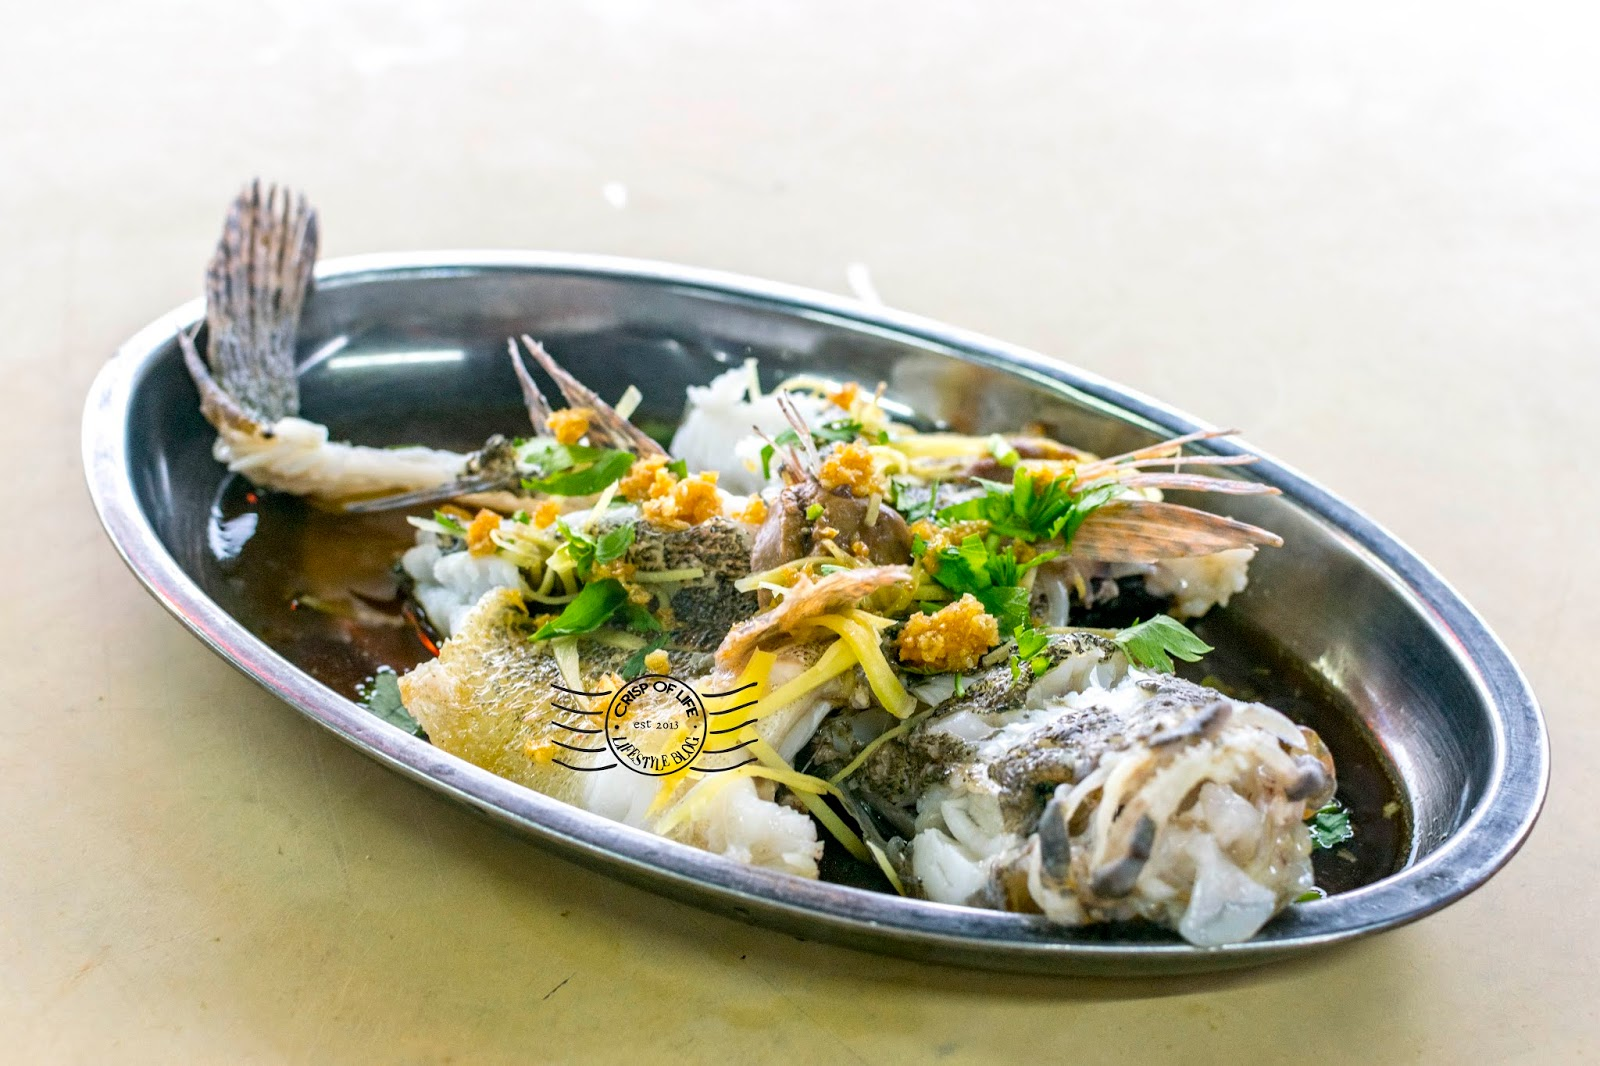 Ng Hang Kee Fresh Water Seafood Restaurant 黄汉期河鲜 @ Bagan Samak, Kedah